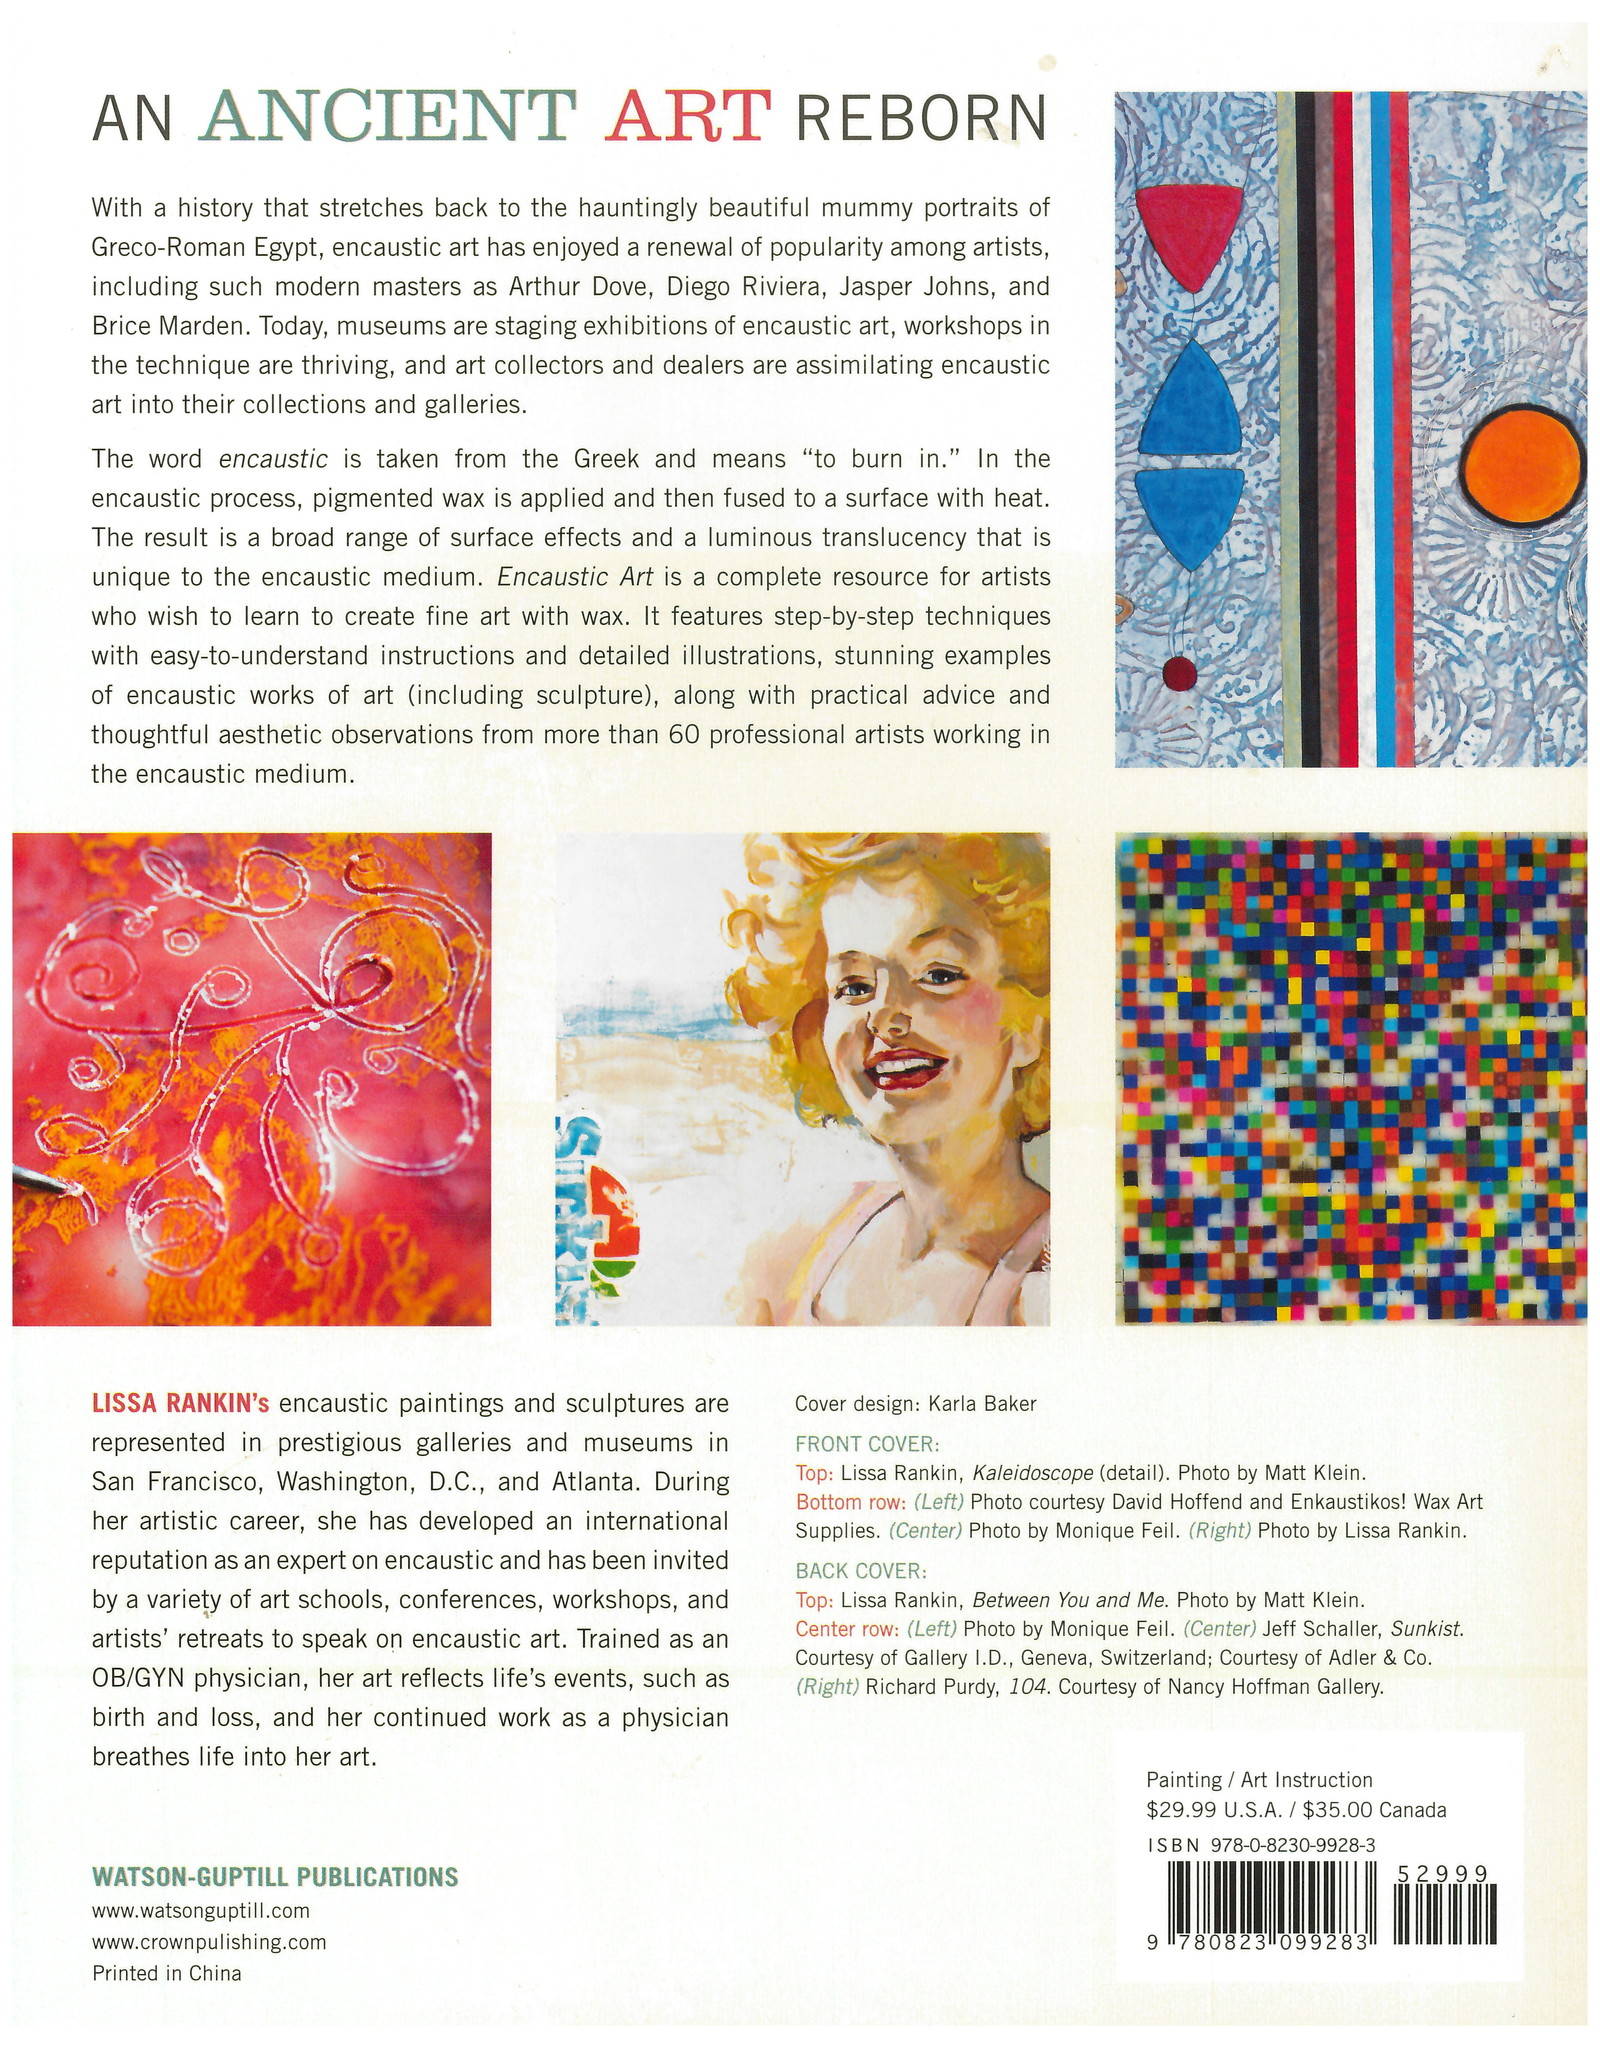 Encaustic Art: Complete Guide to Creating Fine Art With Wax / Lissa Rankin